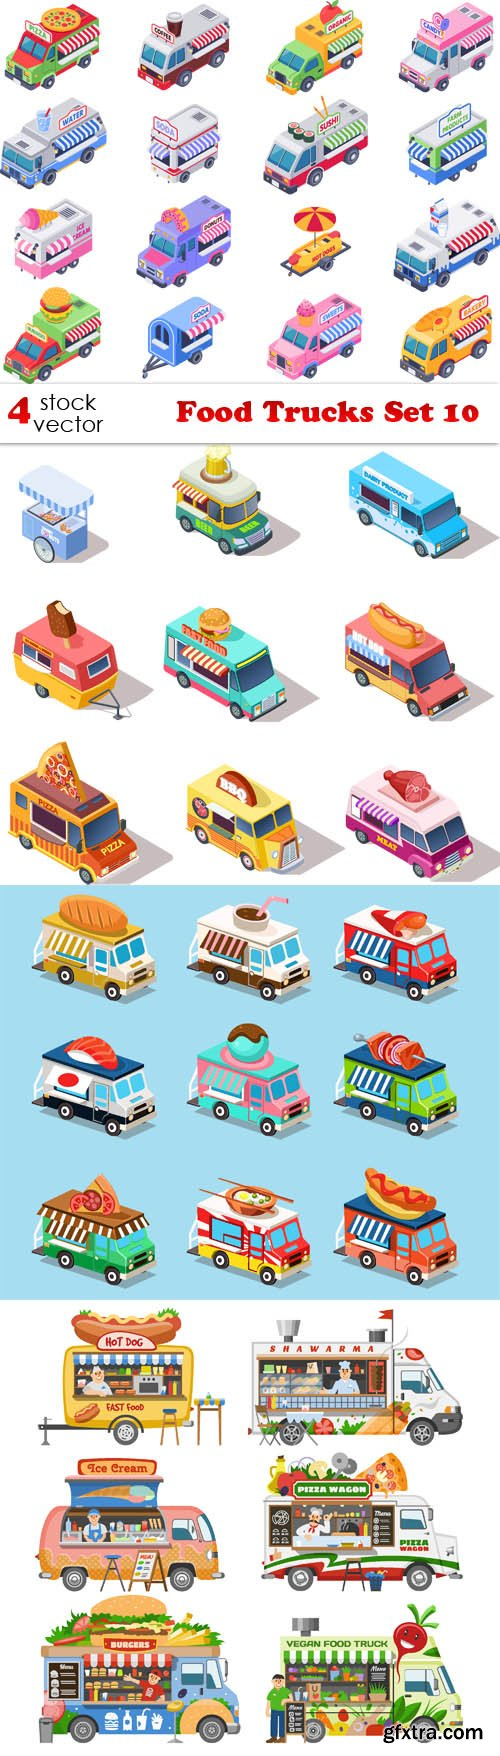 Vectors - Food Trucks Set 10